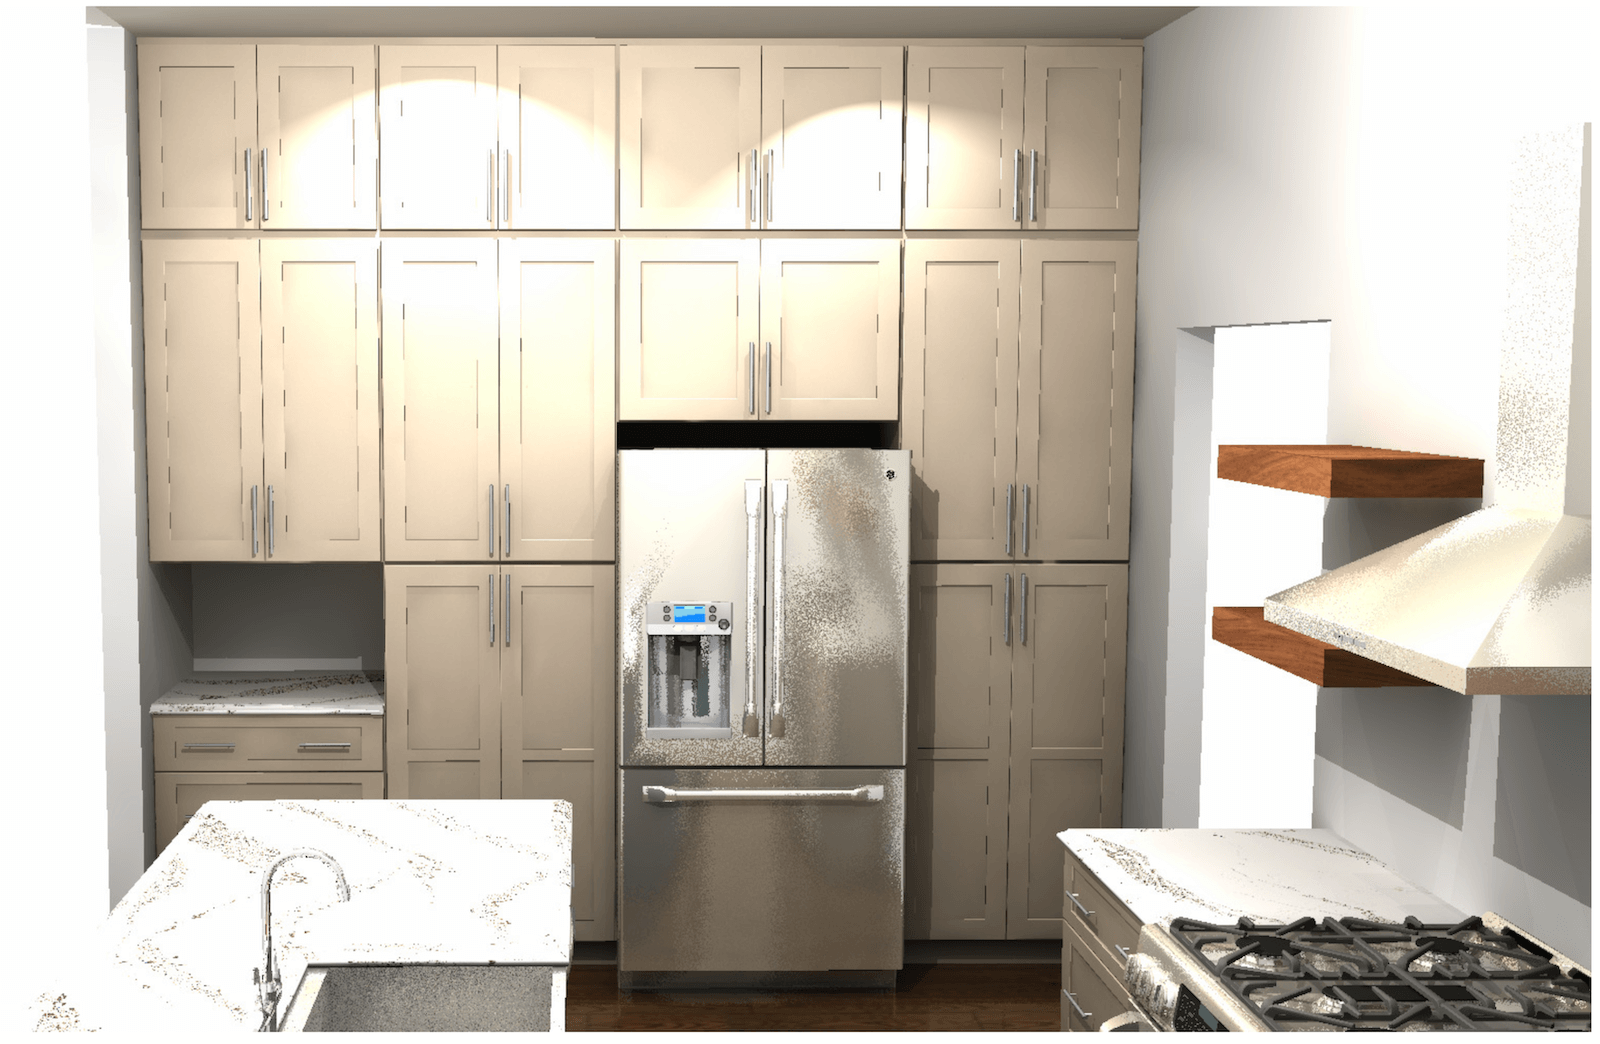 Kitchen Rendering Pantry Wall